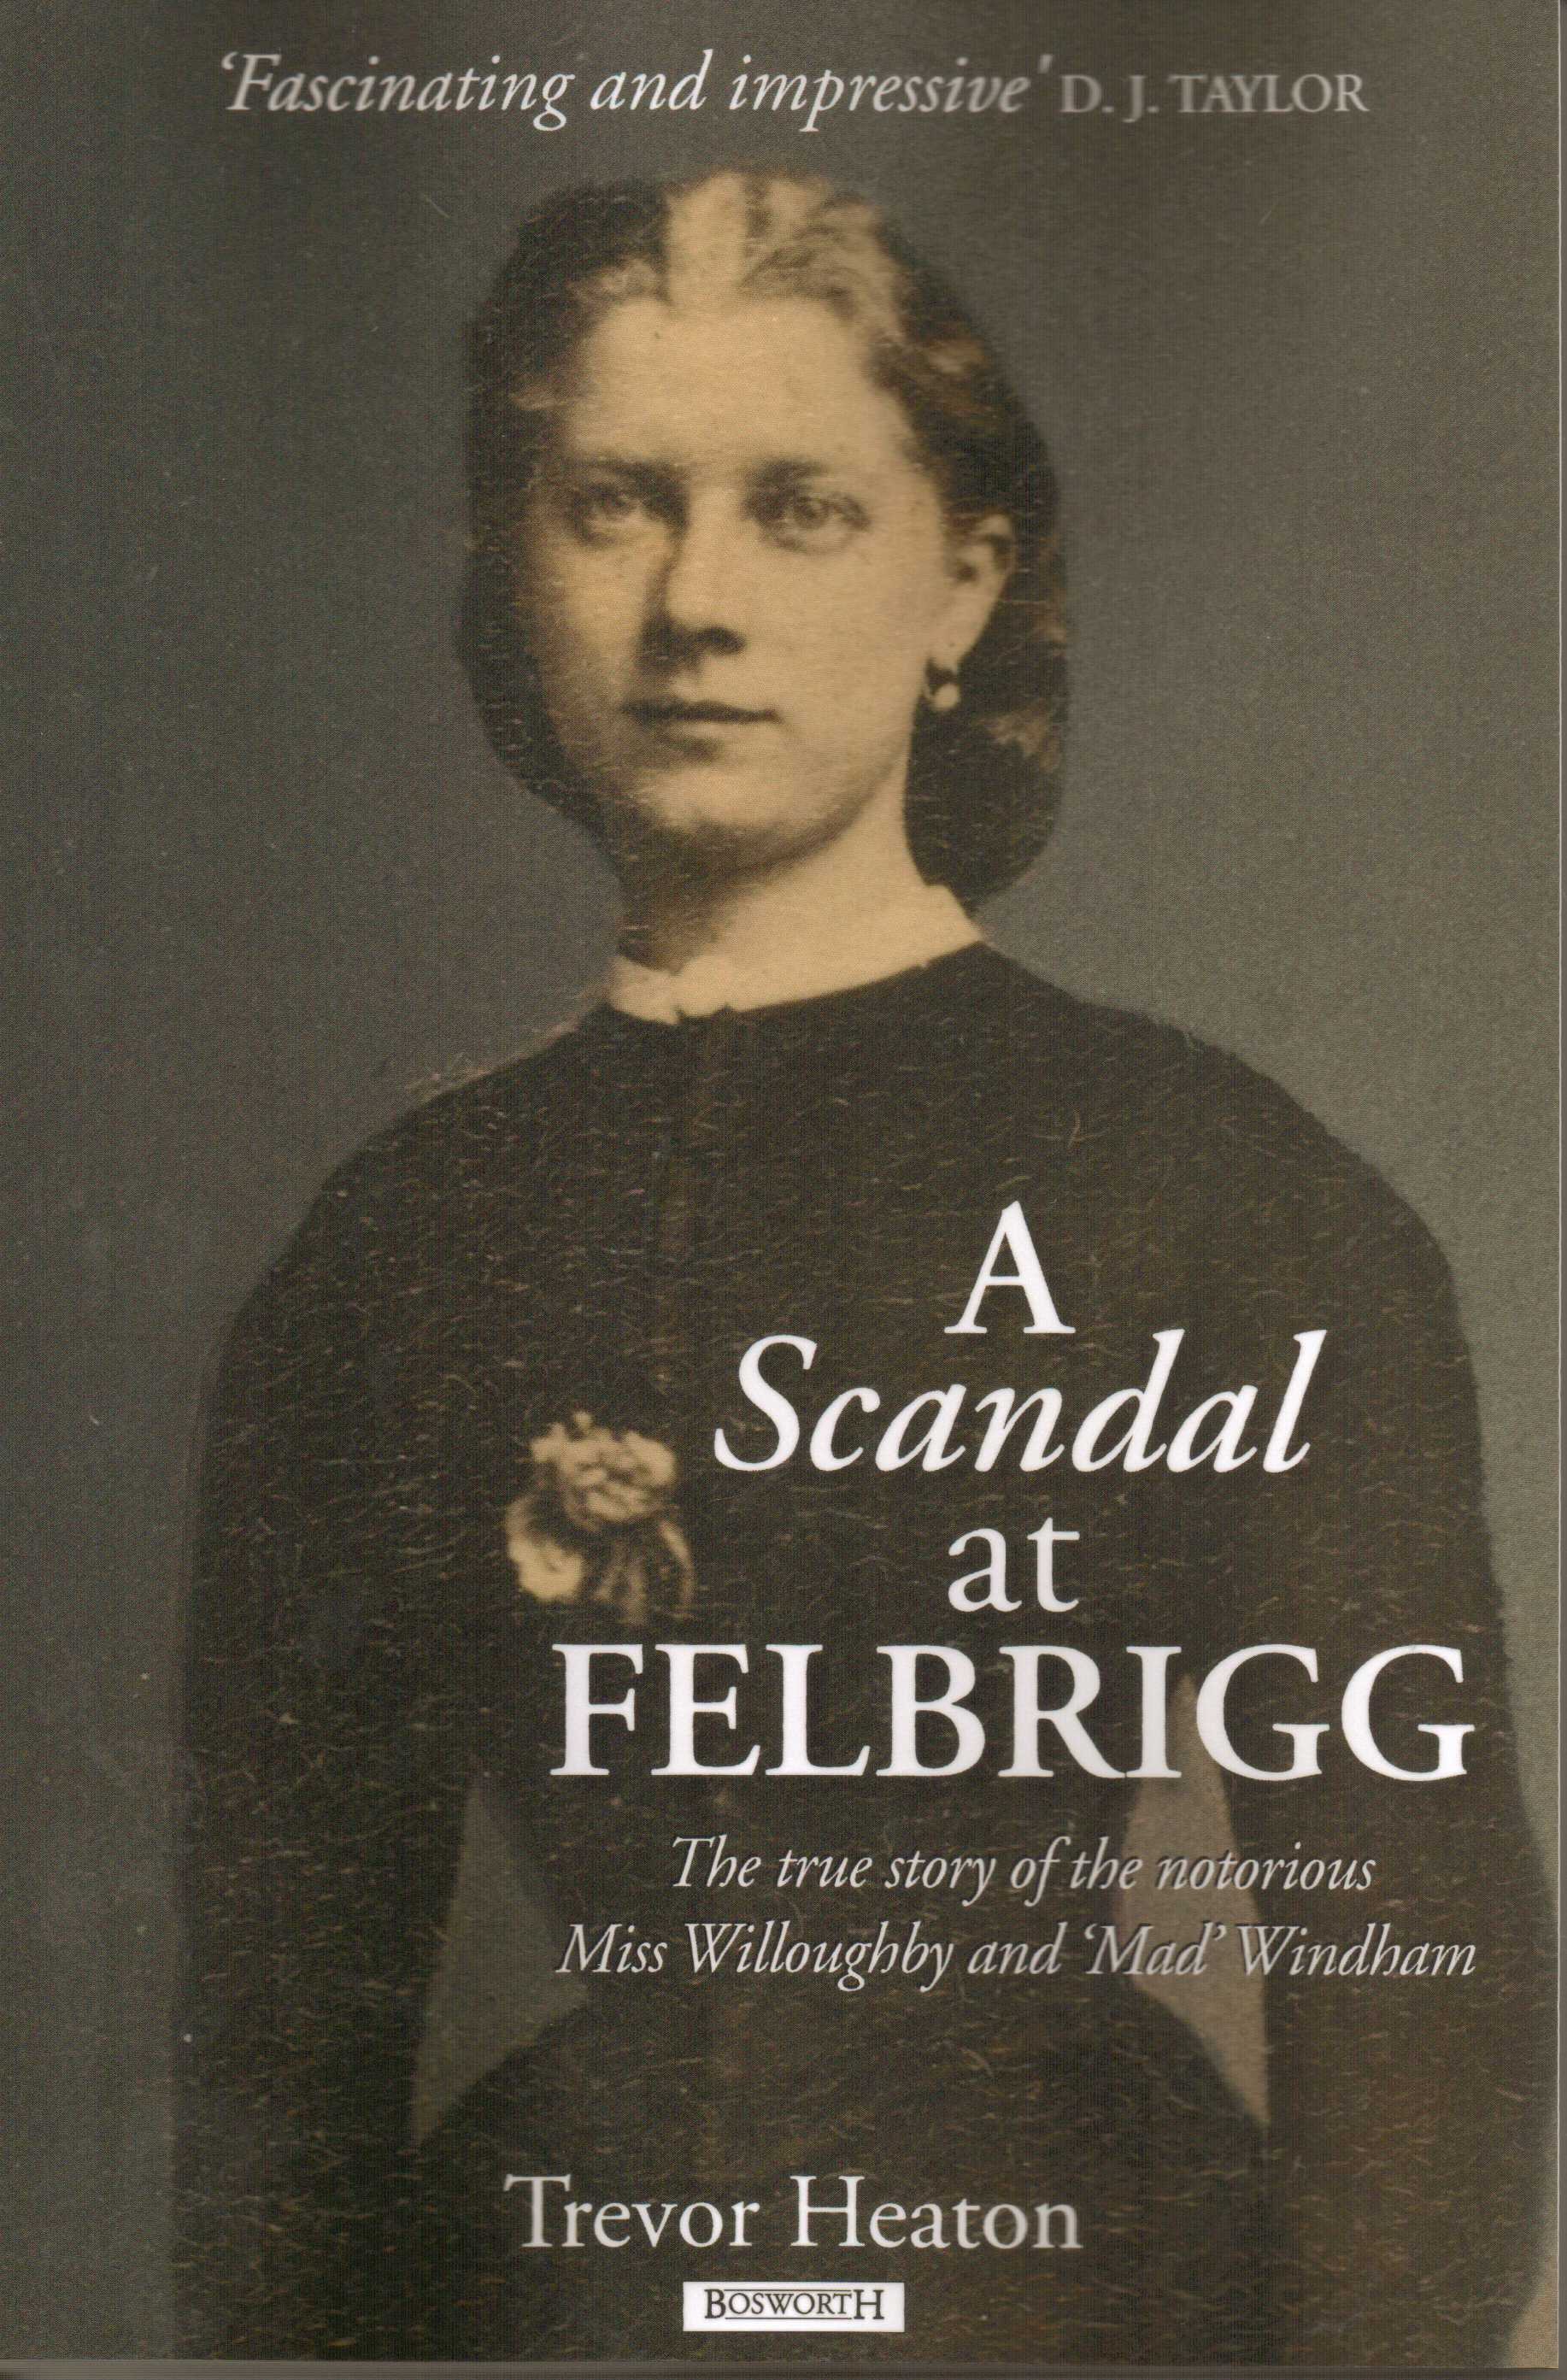 Image for A Scandal at Felbrigg  The true story of the notorious Miss Willoughby and 'Mad' Windham